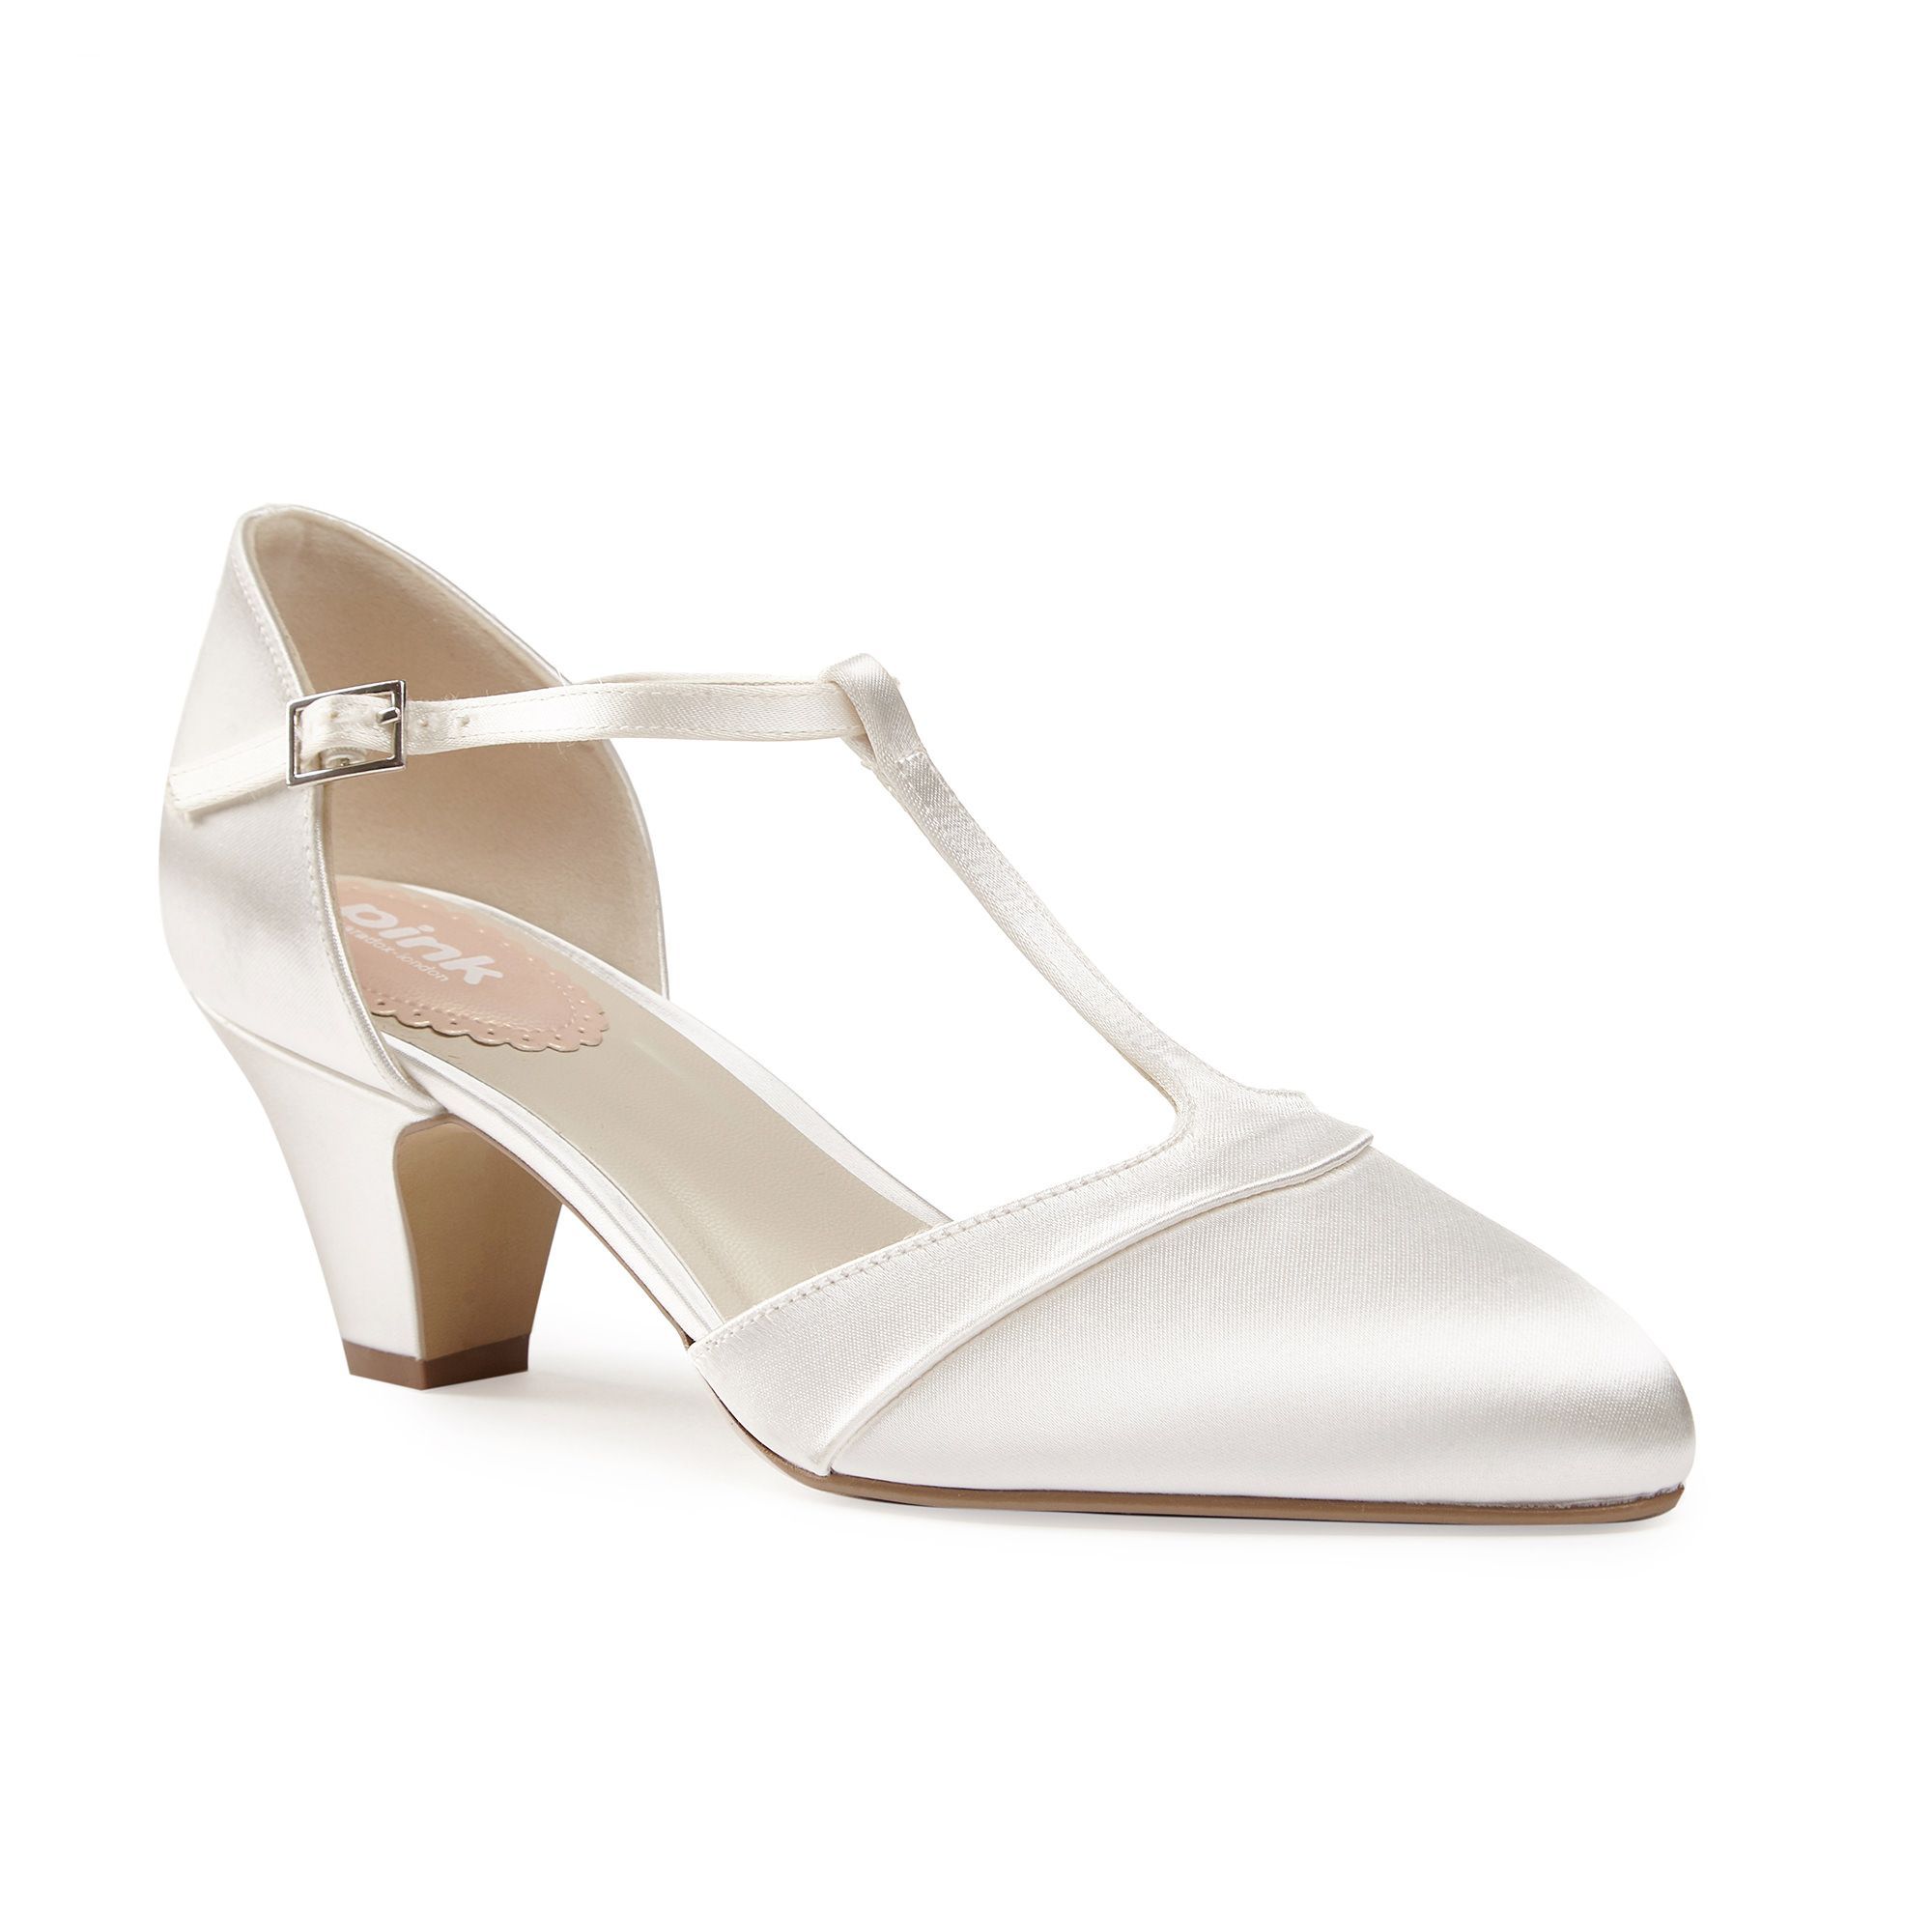 Paradox London Pink Kitten almond toe tbar court shoes Cream